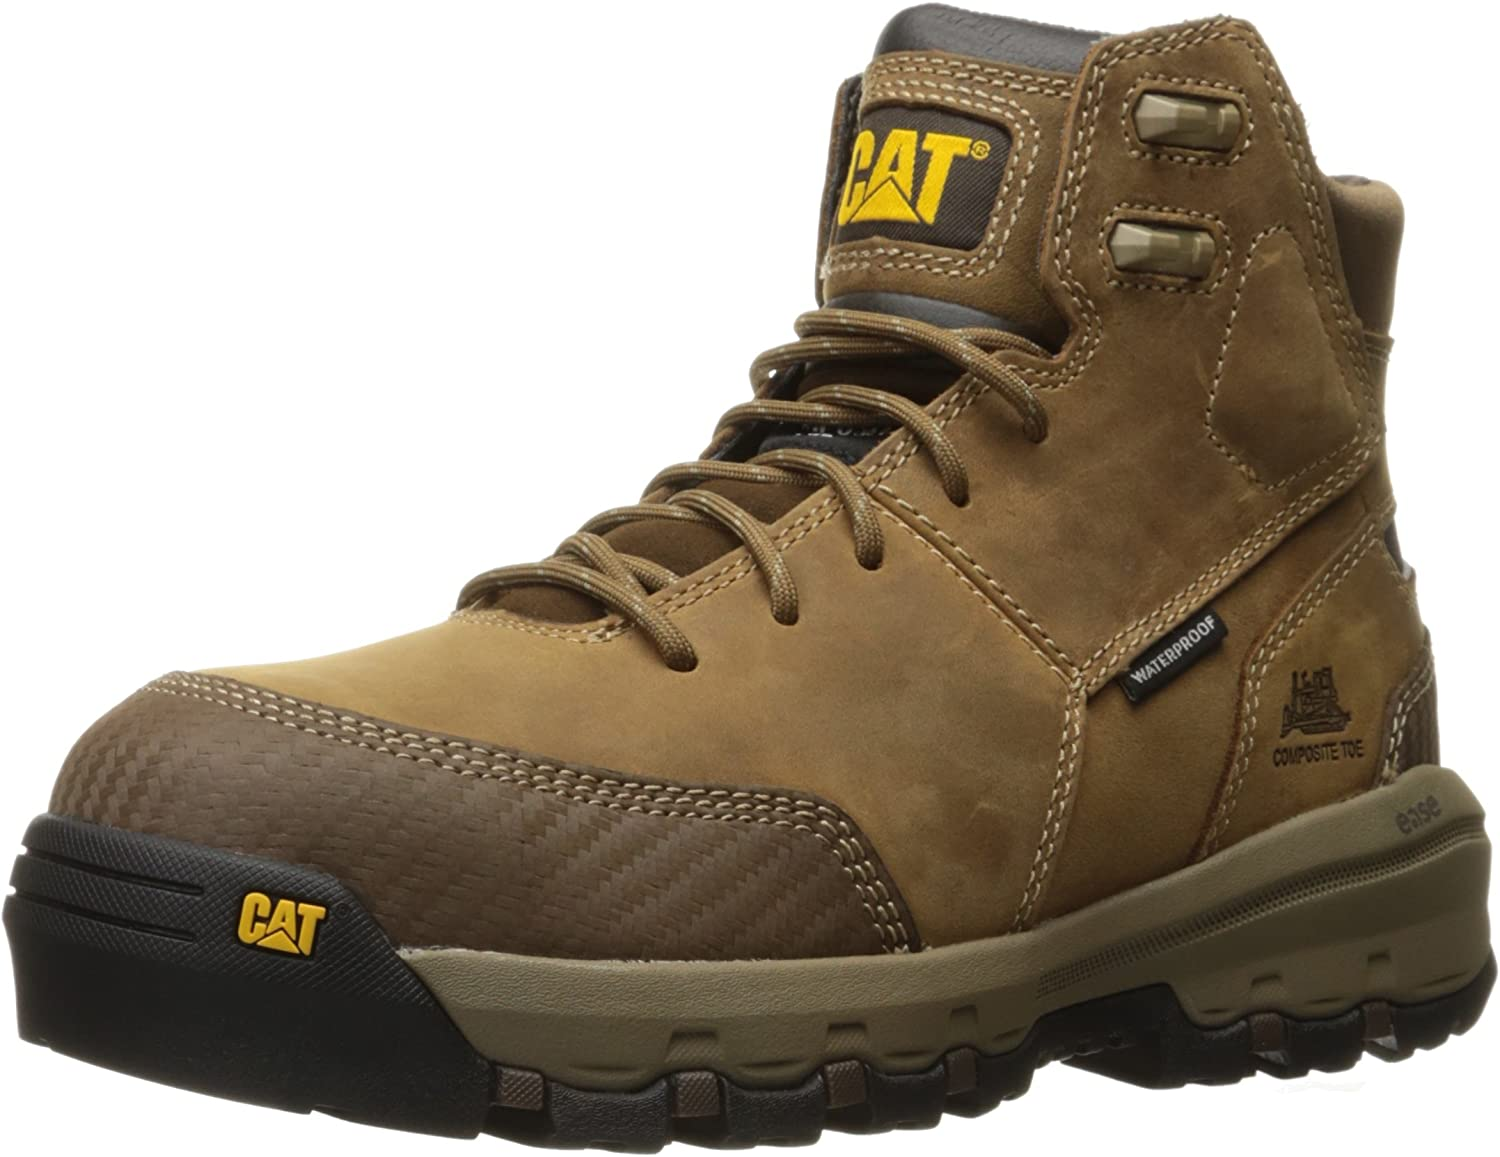 Caterpillar Device Max 76% OFF Waterproof Free shipping on posting reviews Composite Men's Toe Work Boot